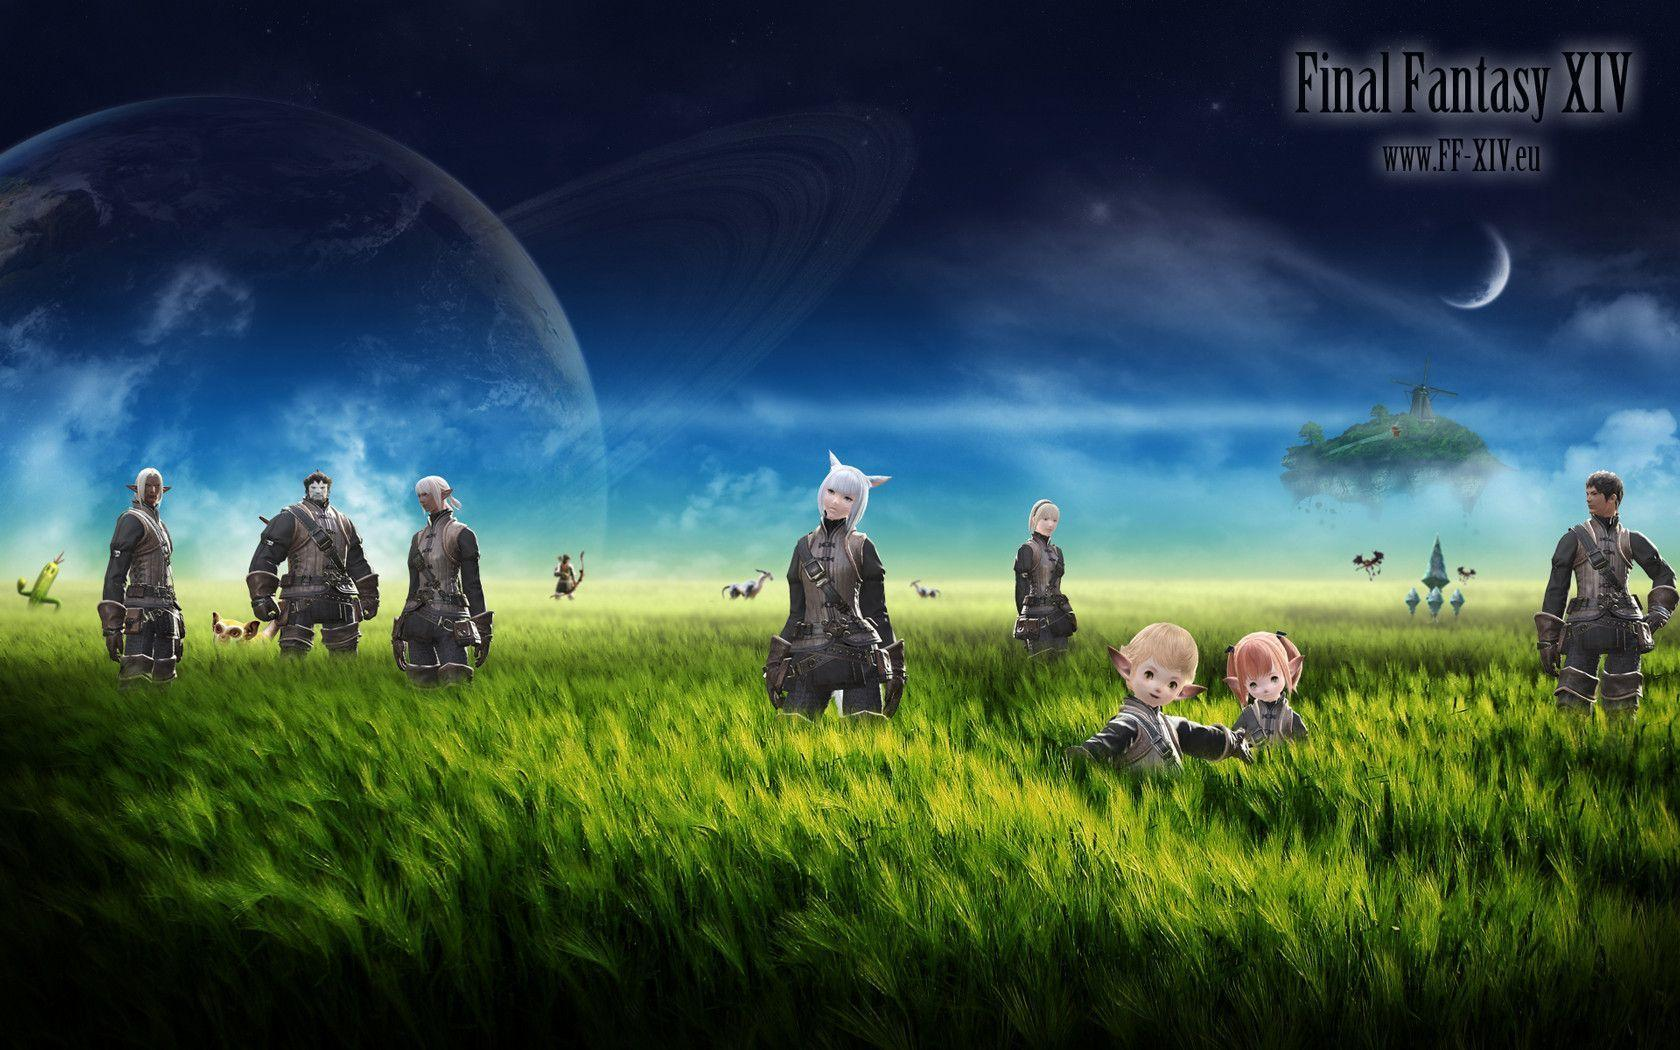 Final fantasy xiv wallpapers wallpaper cave for Bargain wallpaper